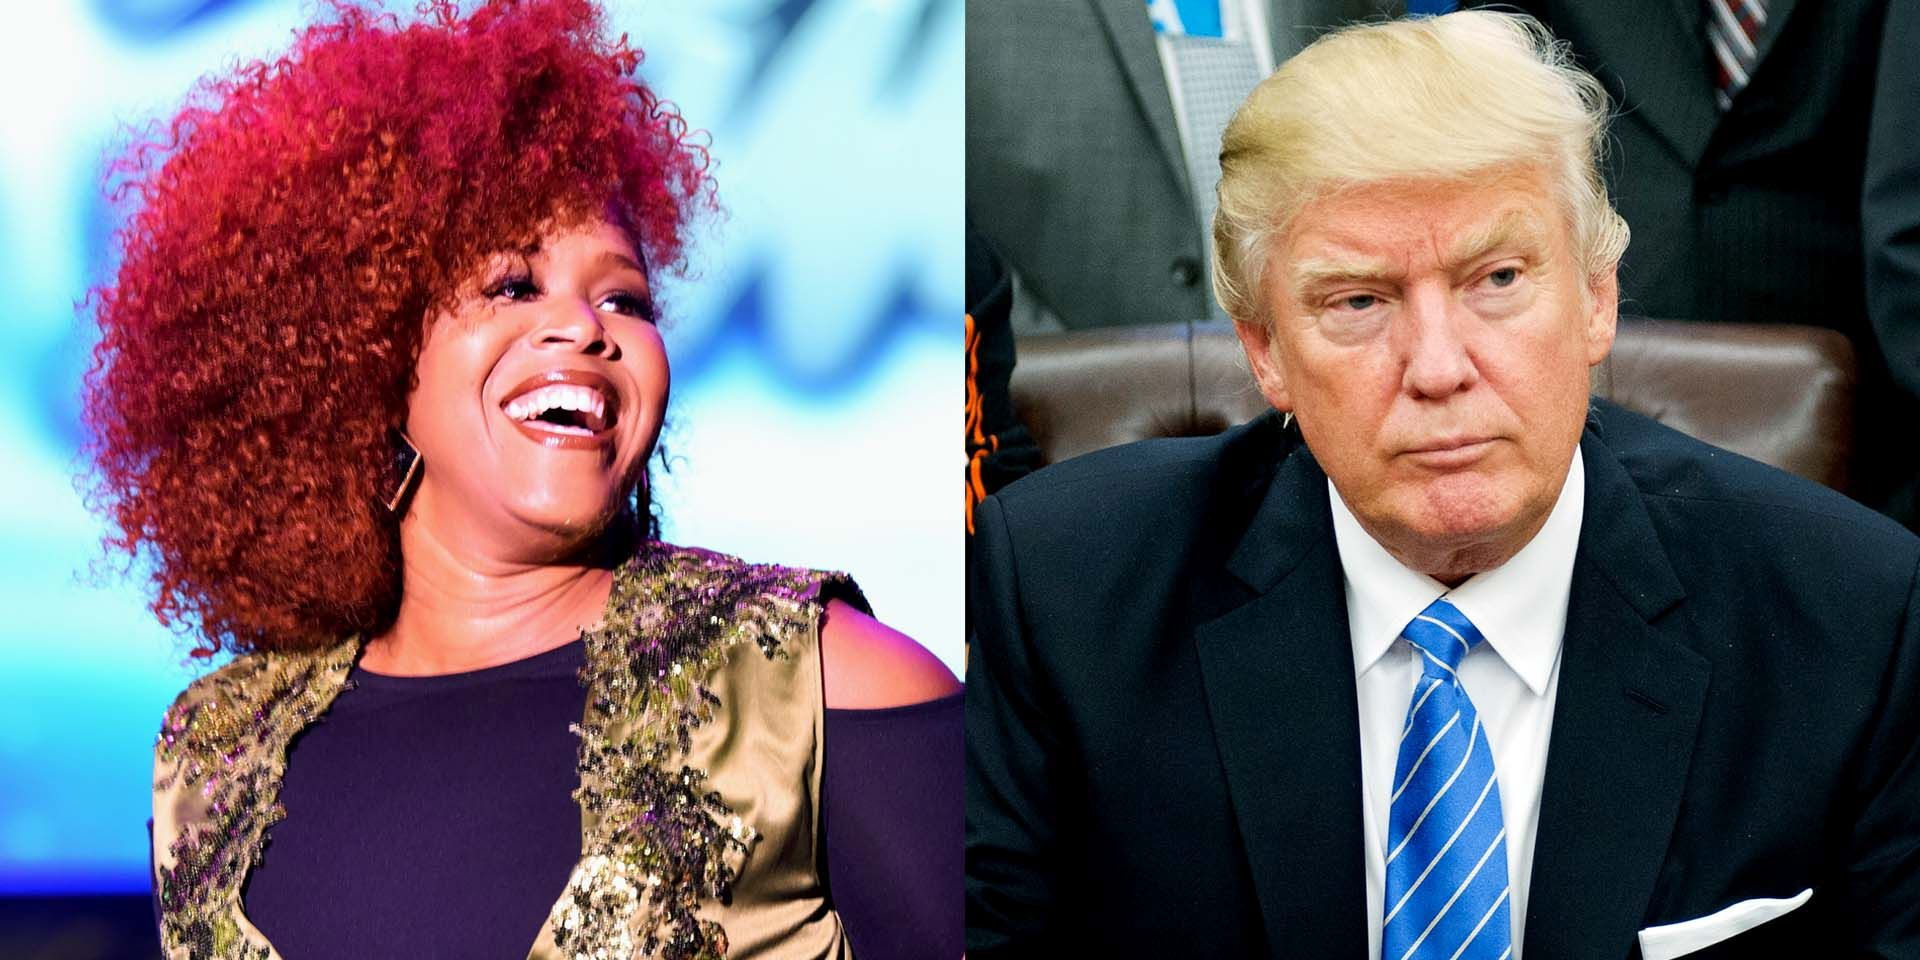 tina campbell using christian values to support donald trump mary mary 2017